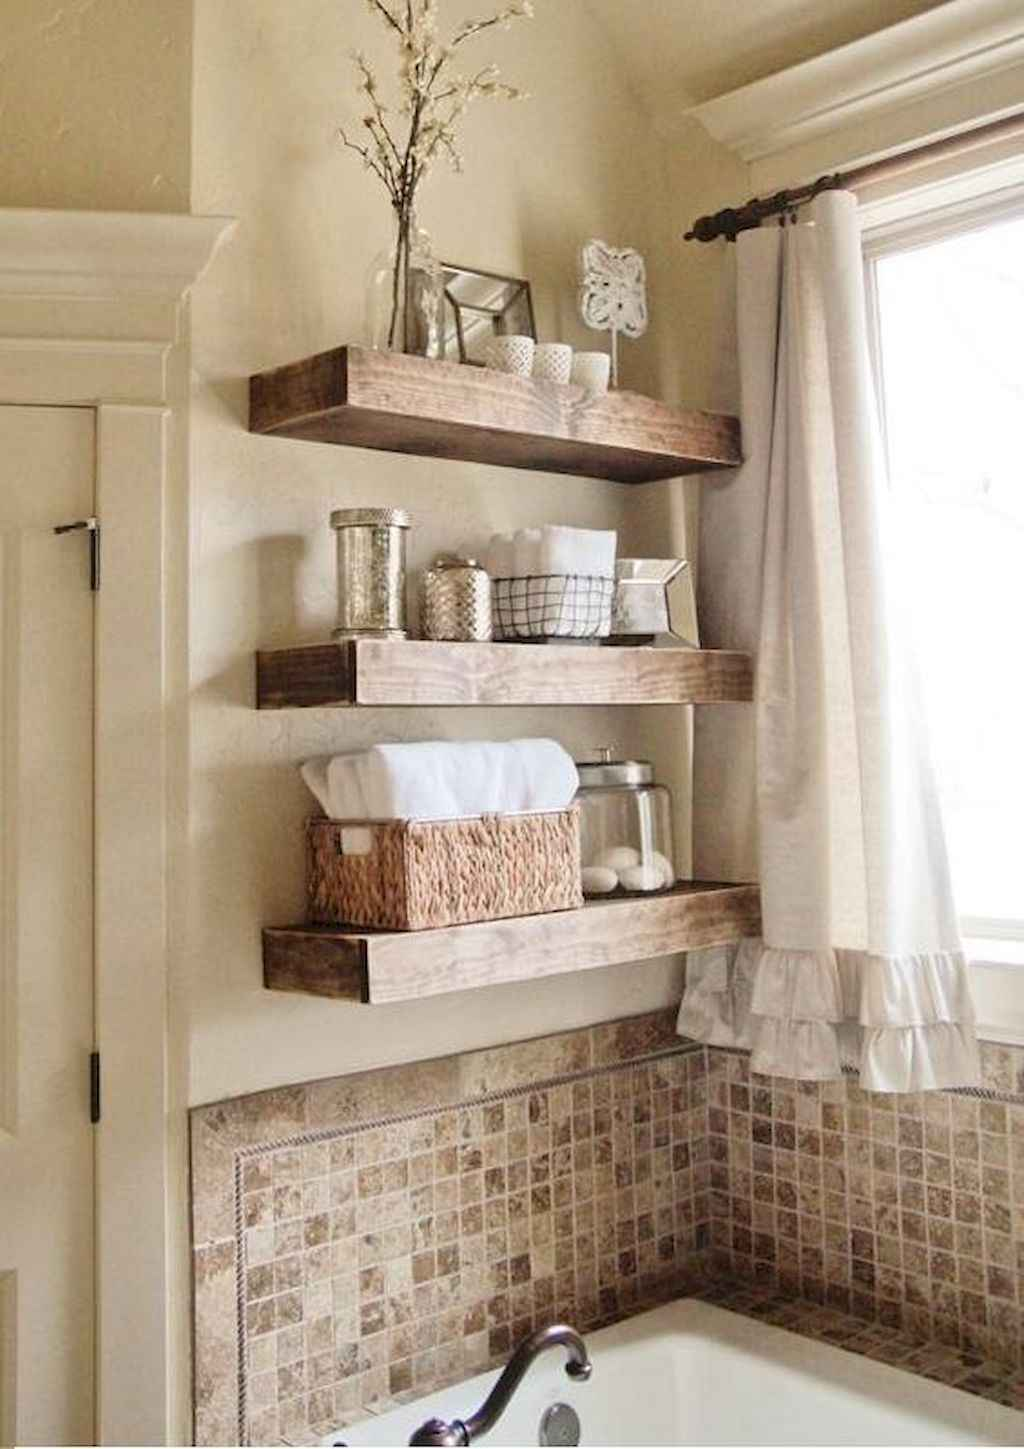 Affordable diy small space apartment storage ideas (44)